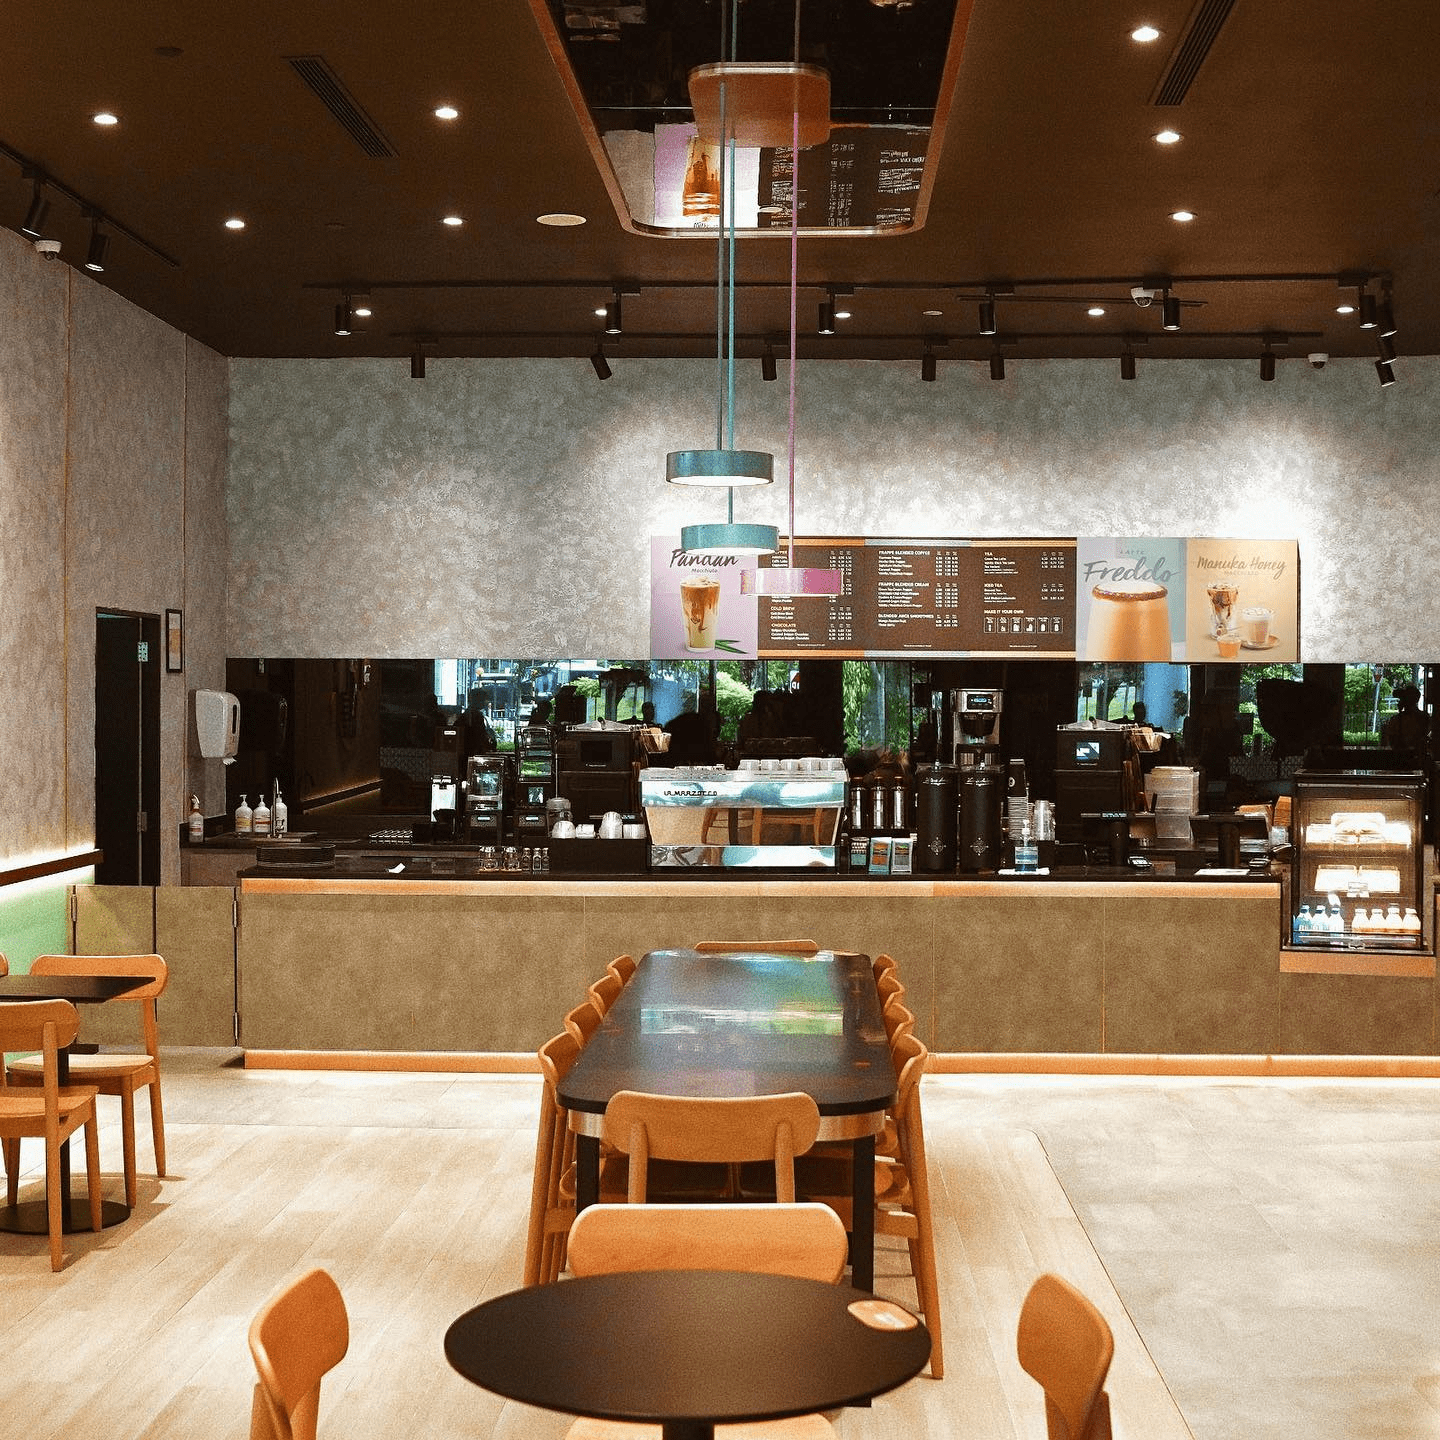 New Cafe August 2020 - MAXX Coffee